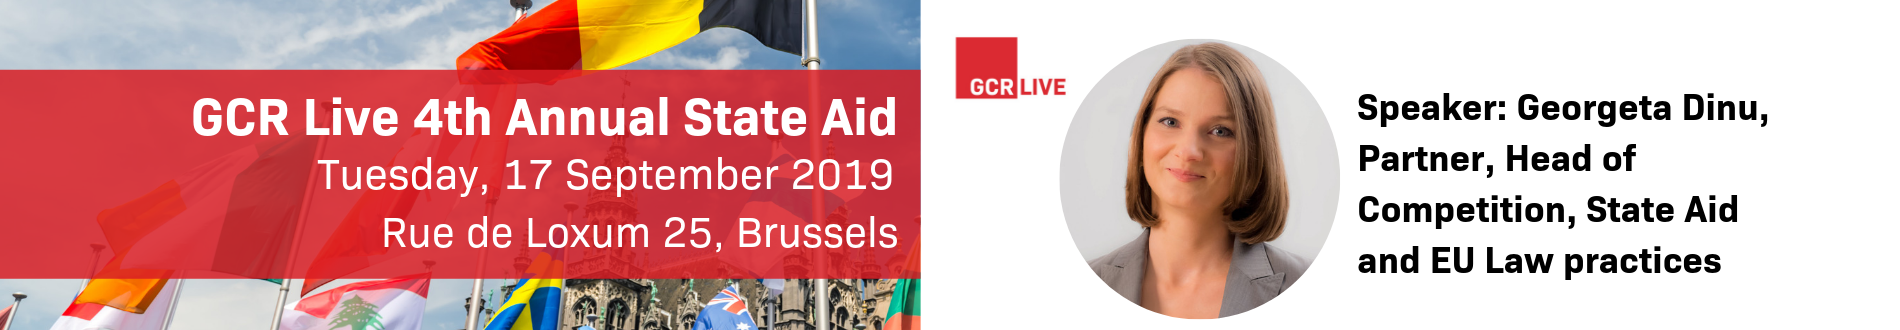 GCR-Live-4th-Annual-State-Aid-wesbite-banner-for-NNDKP-1900x330_v2